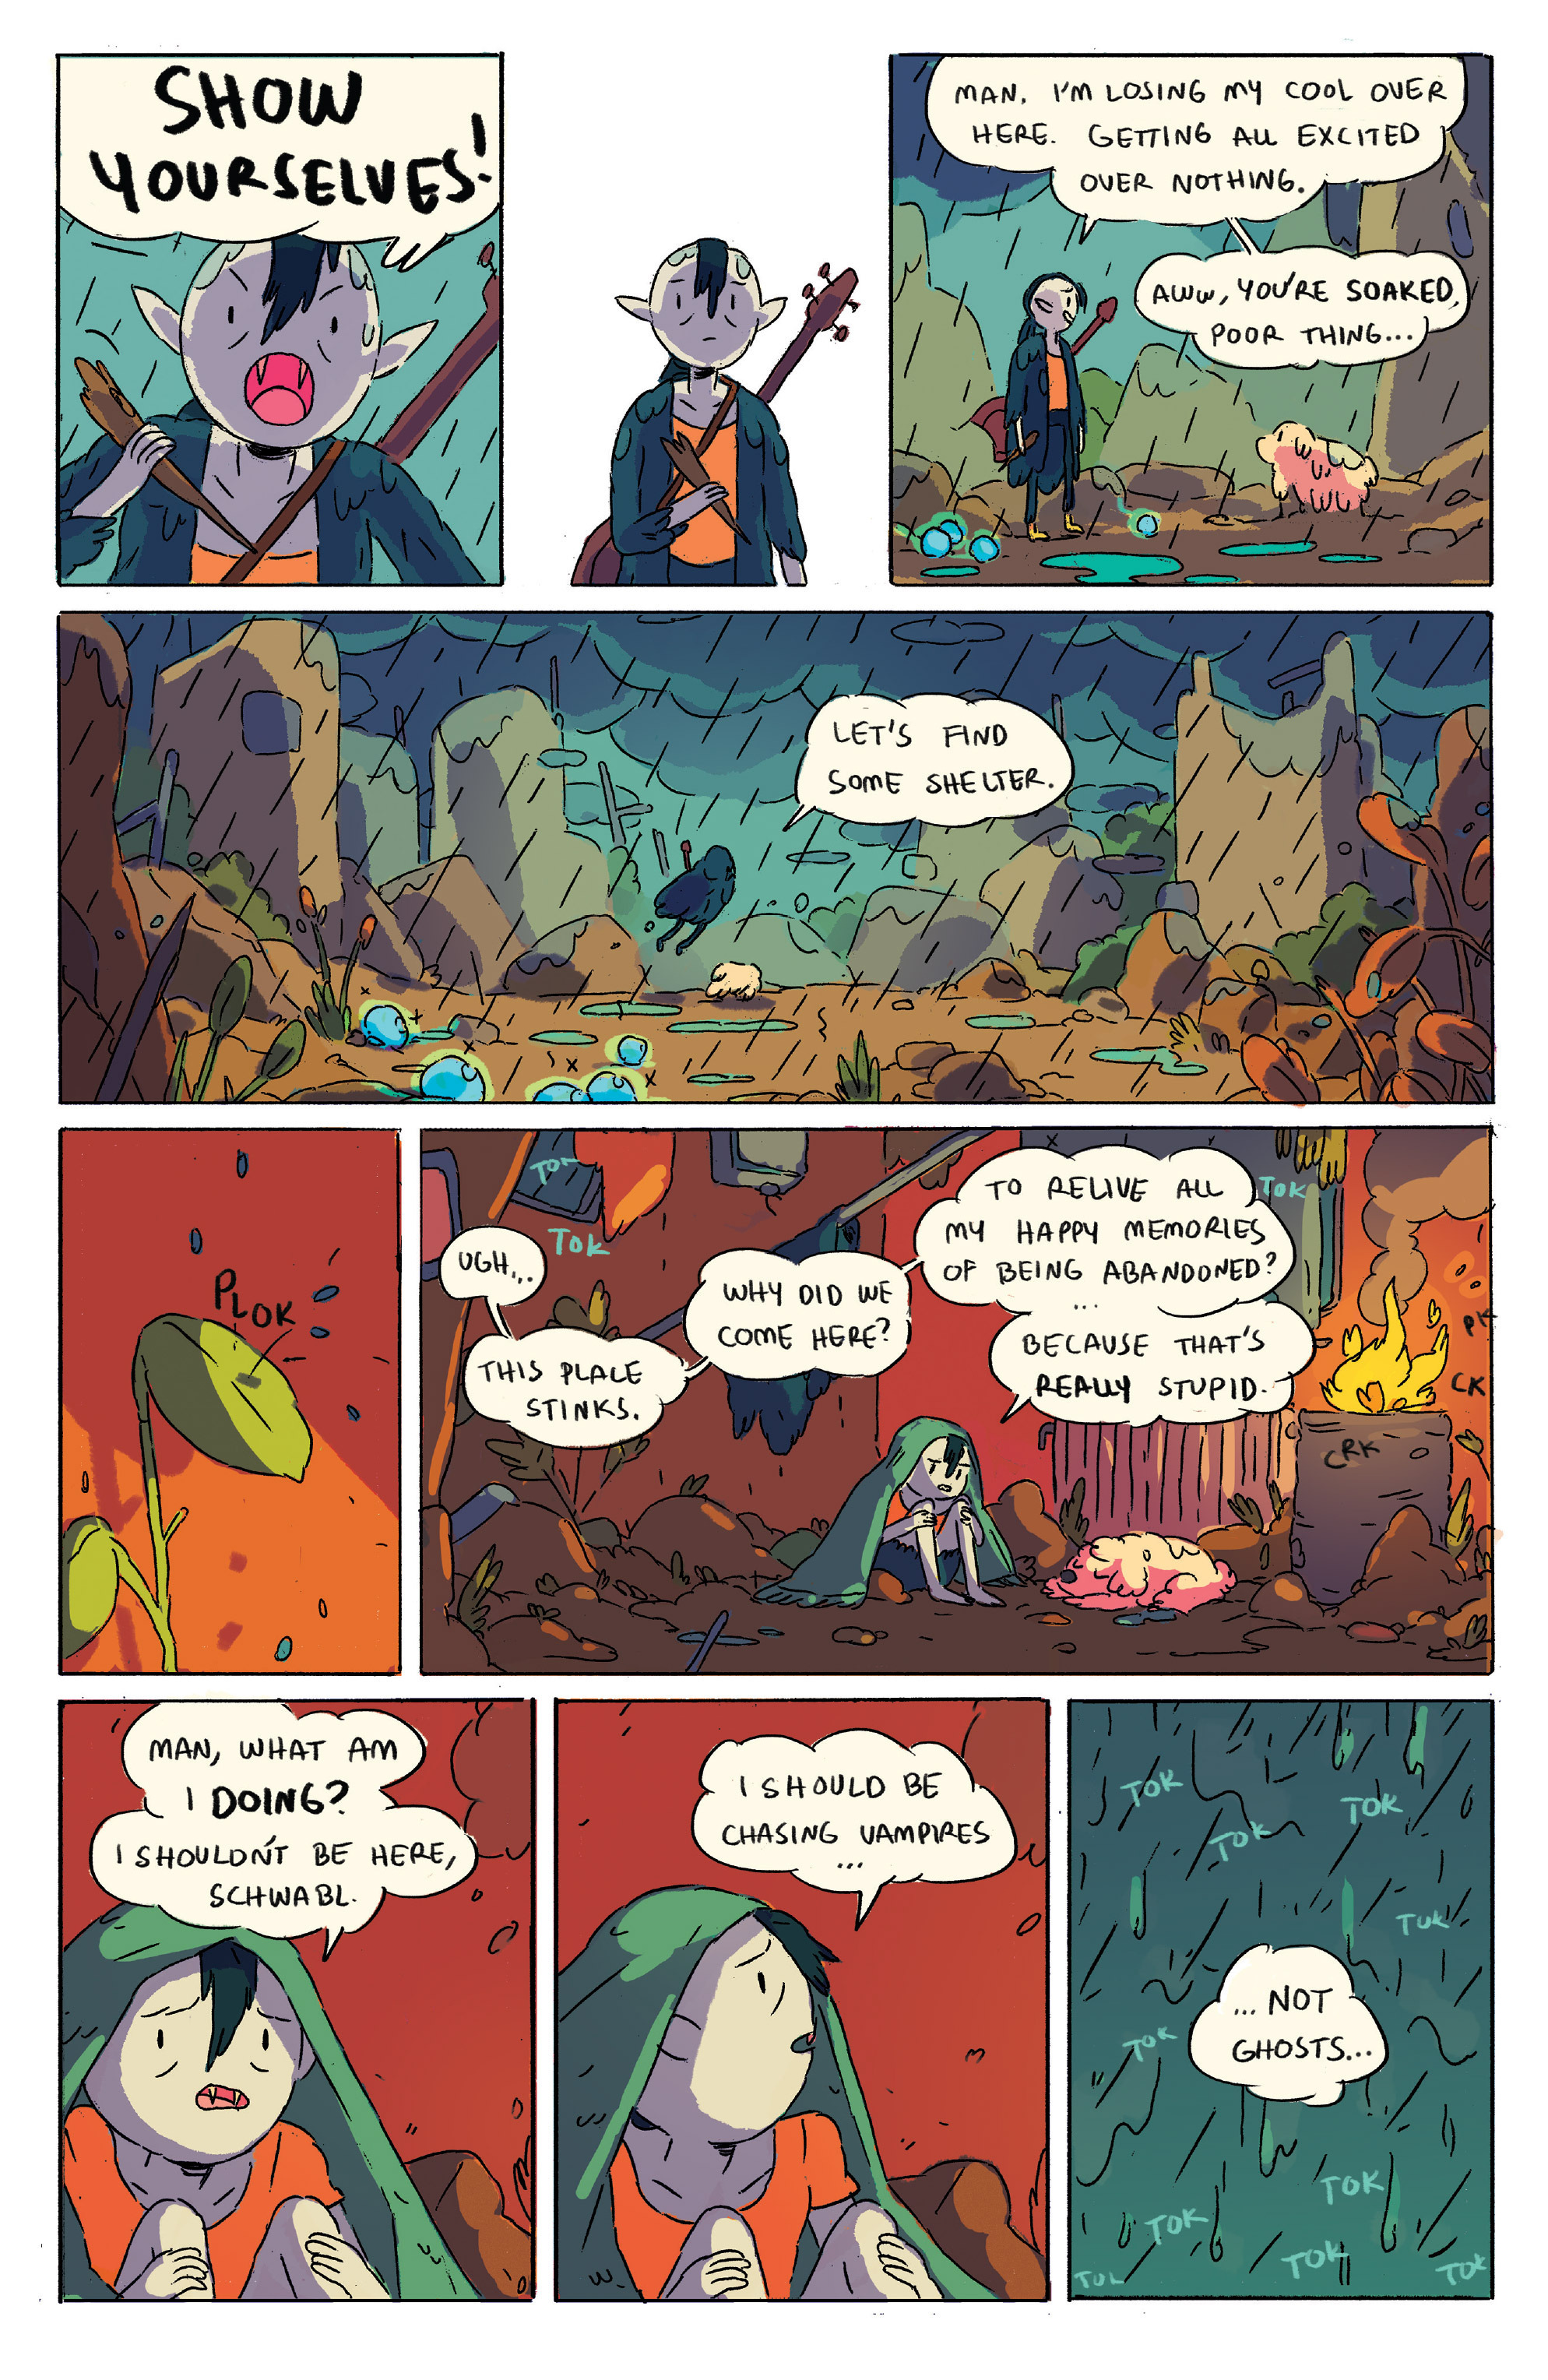 Read online Adventure Time comic -  Issue # _2015 Spoooktacular - 6